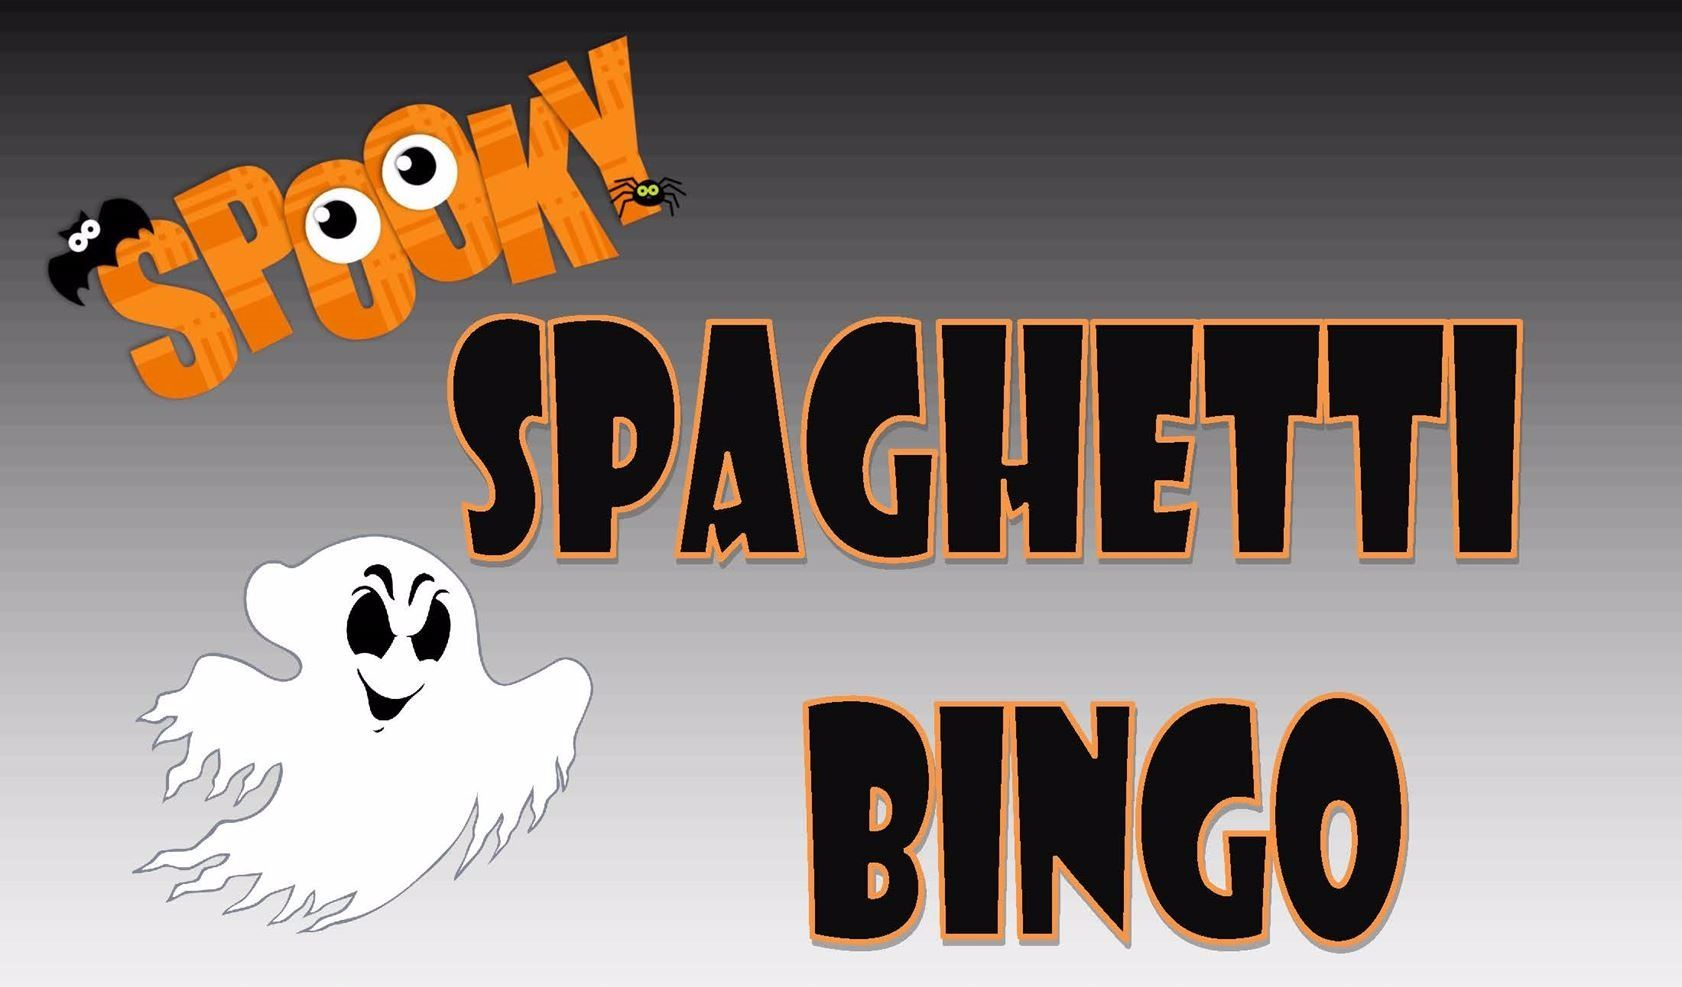 Spaghetti Bingo fall winter 2017